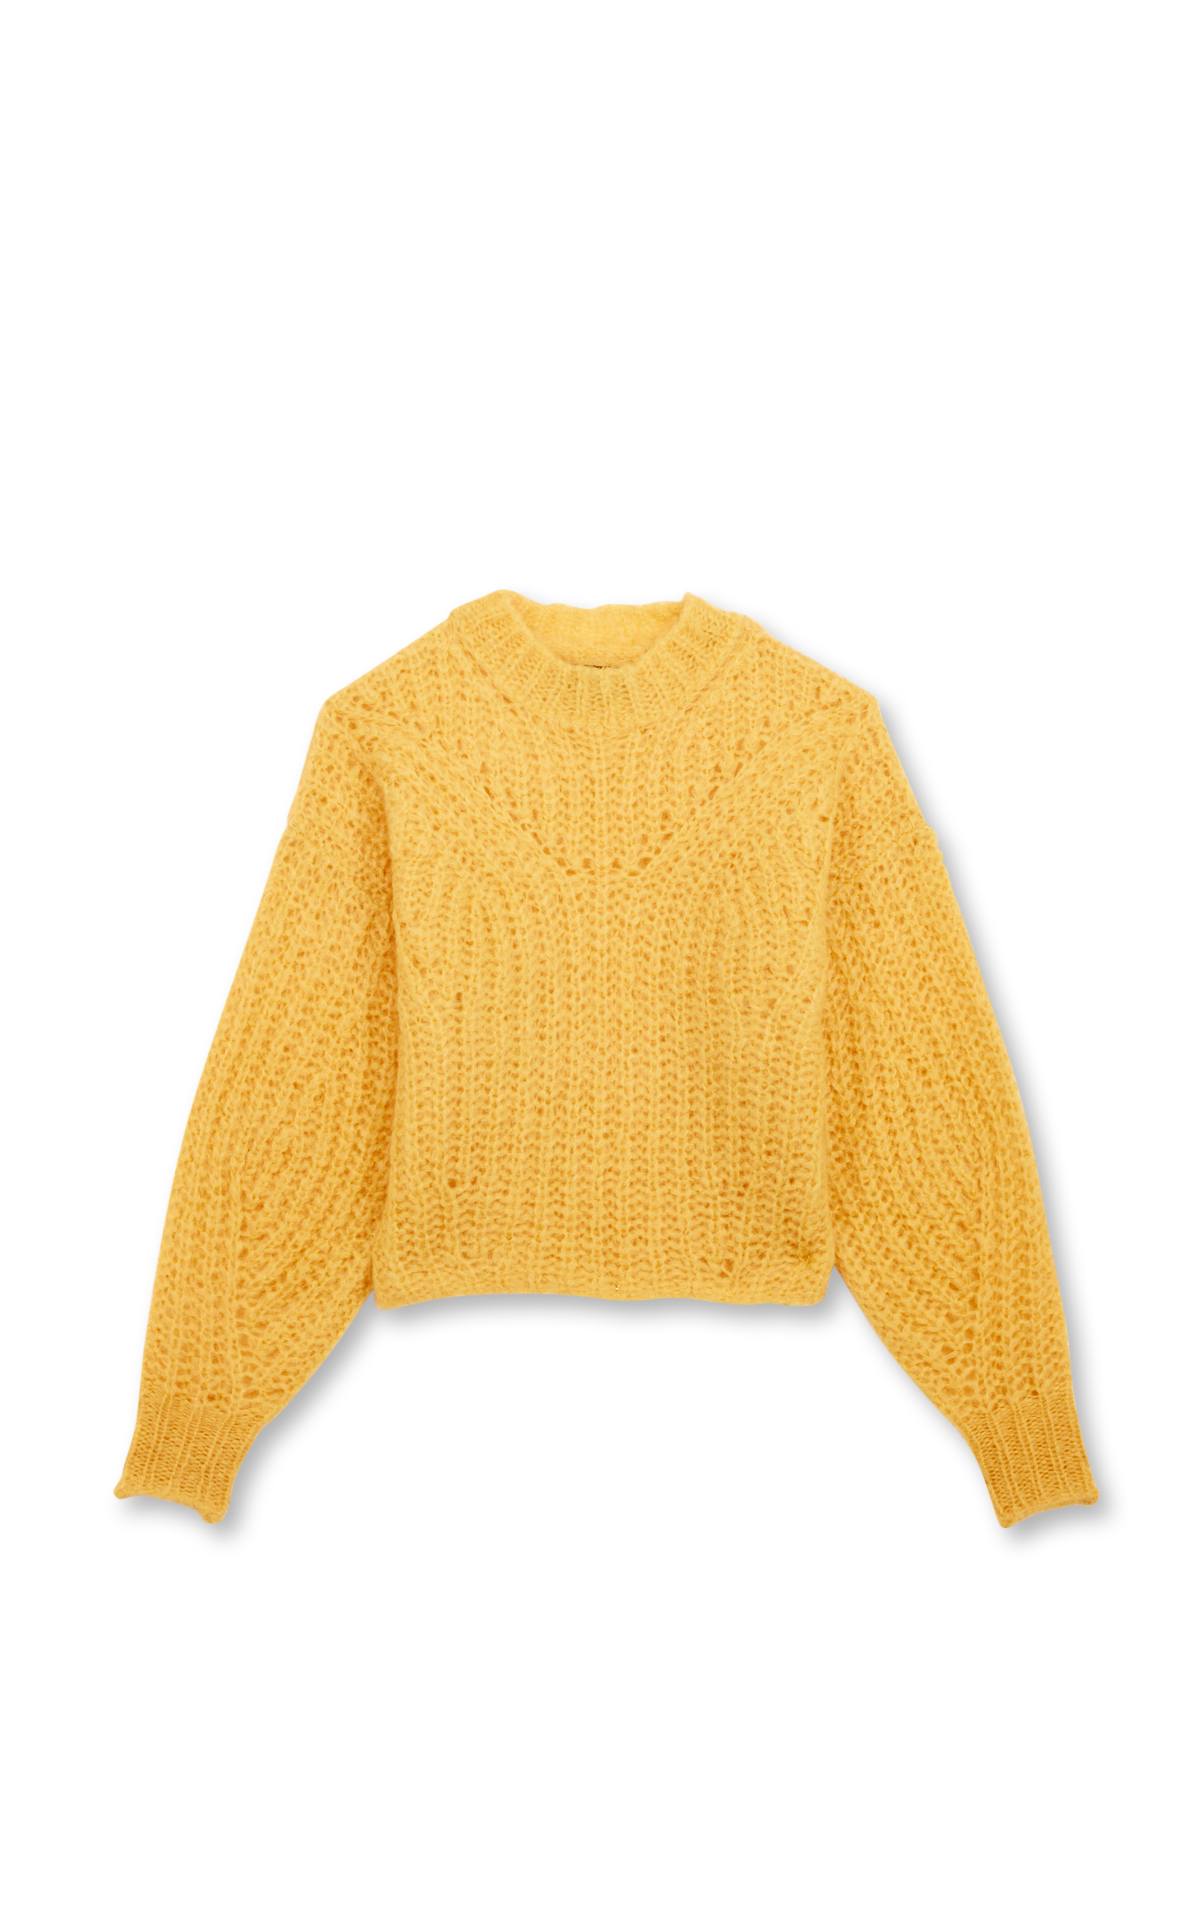 Isabel Marant Inko yellow rib-knit jumper